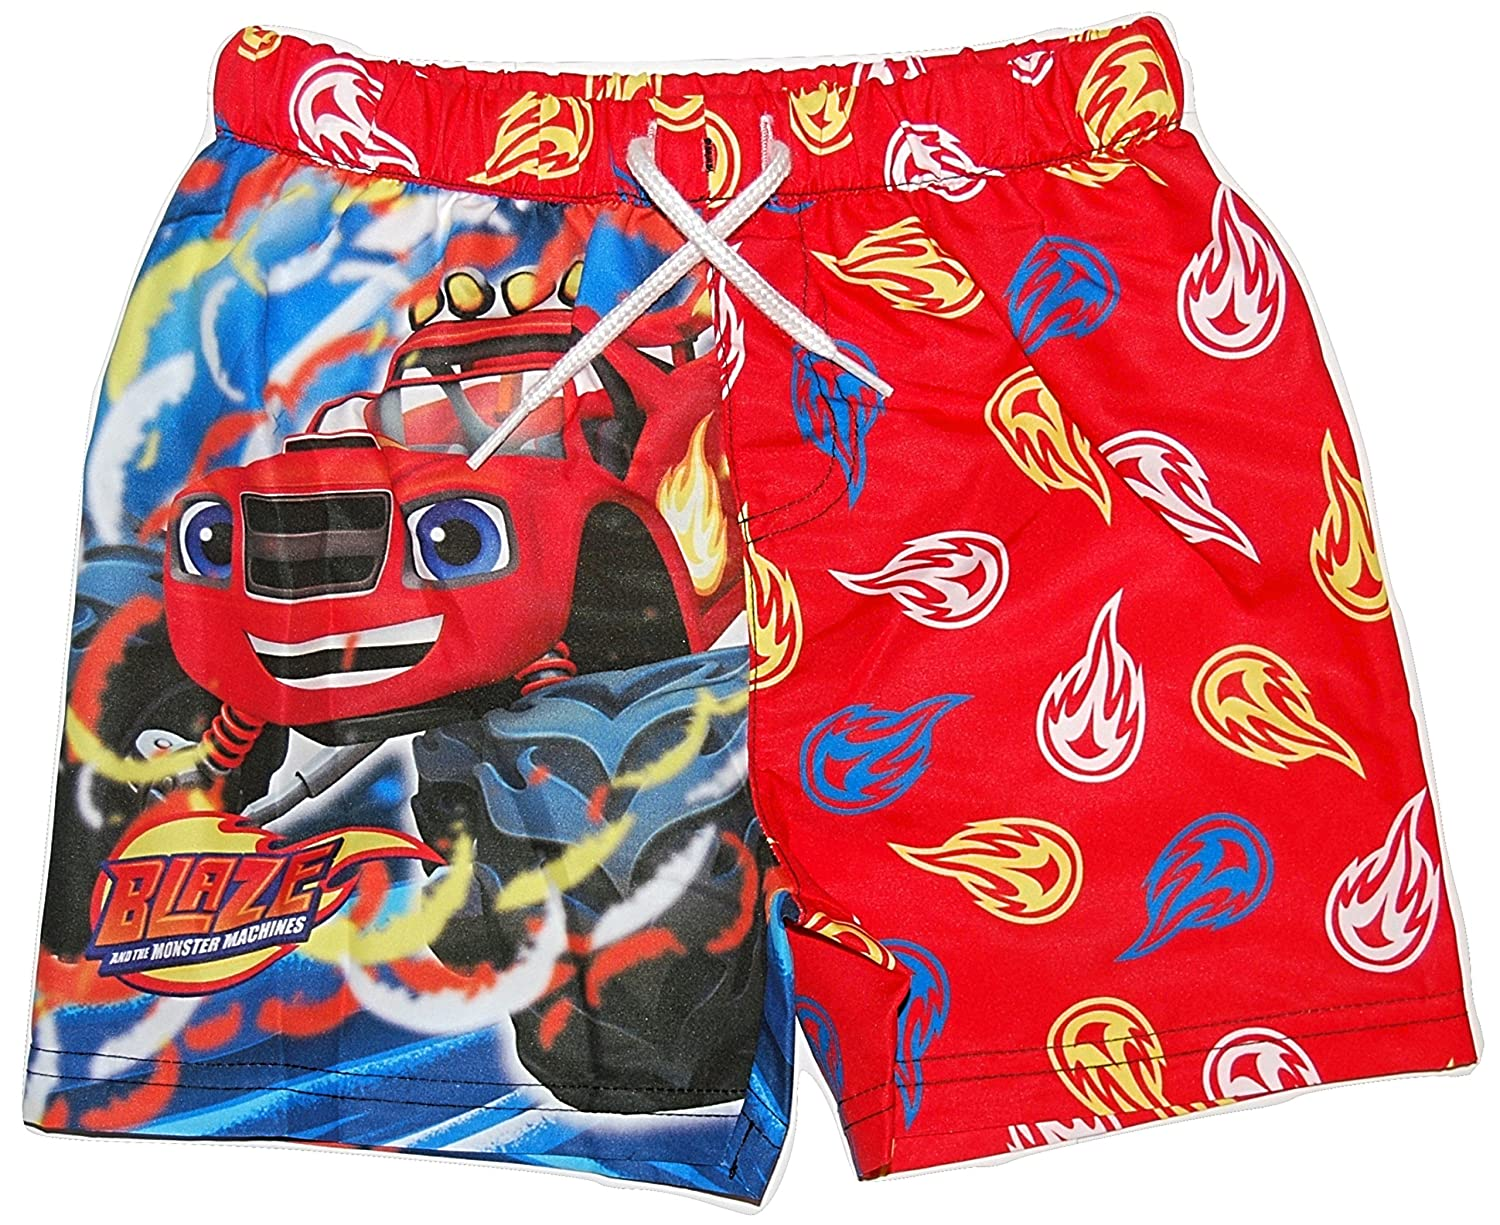 Boys Swimming Shorts Trunks Blaze & The Monster Machines 18-24 Months to 4-5 Years